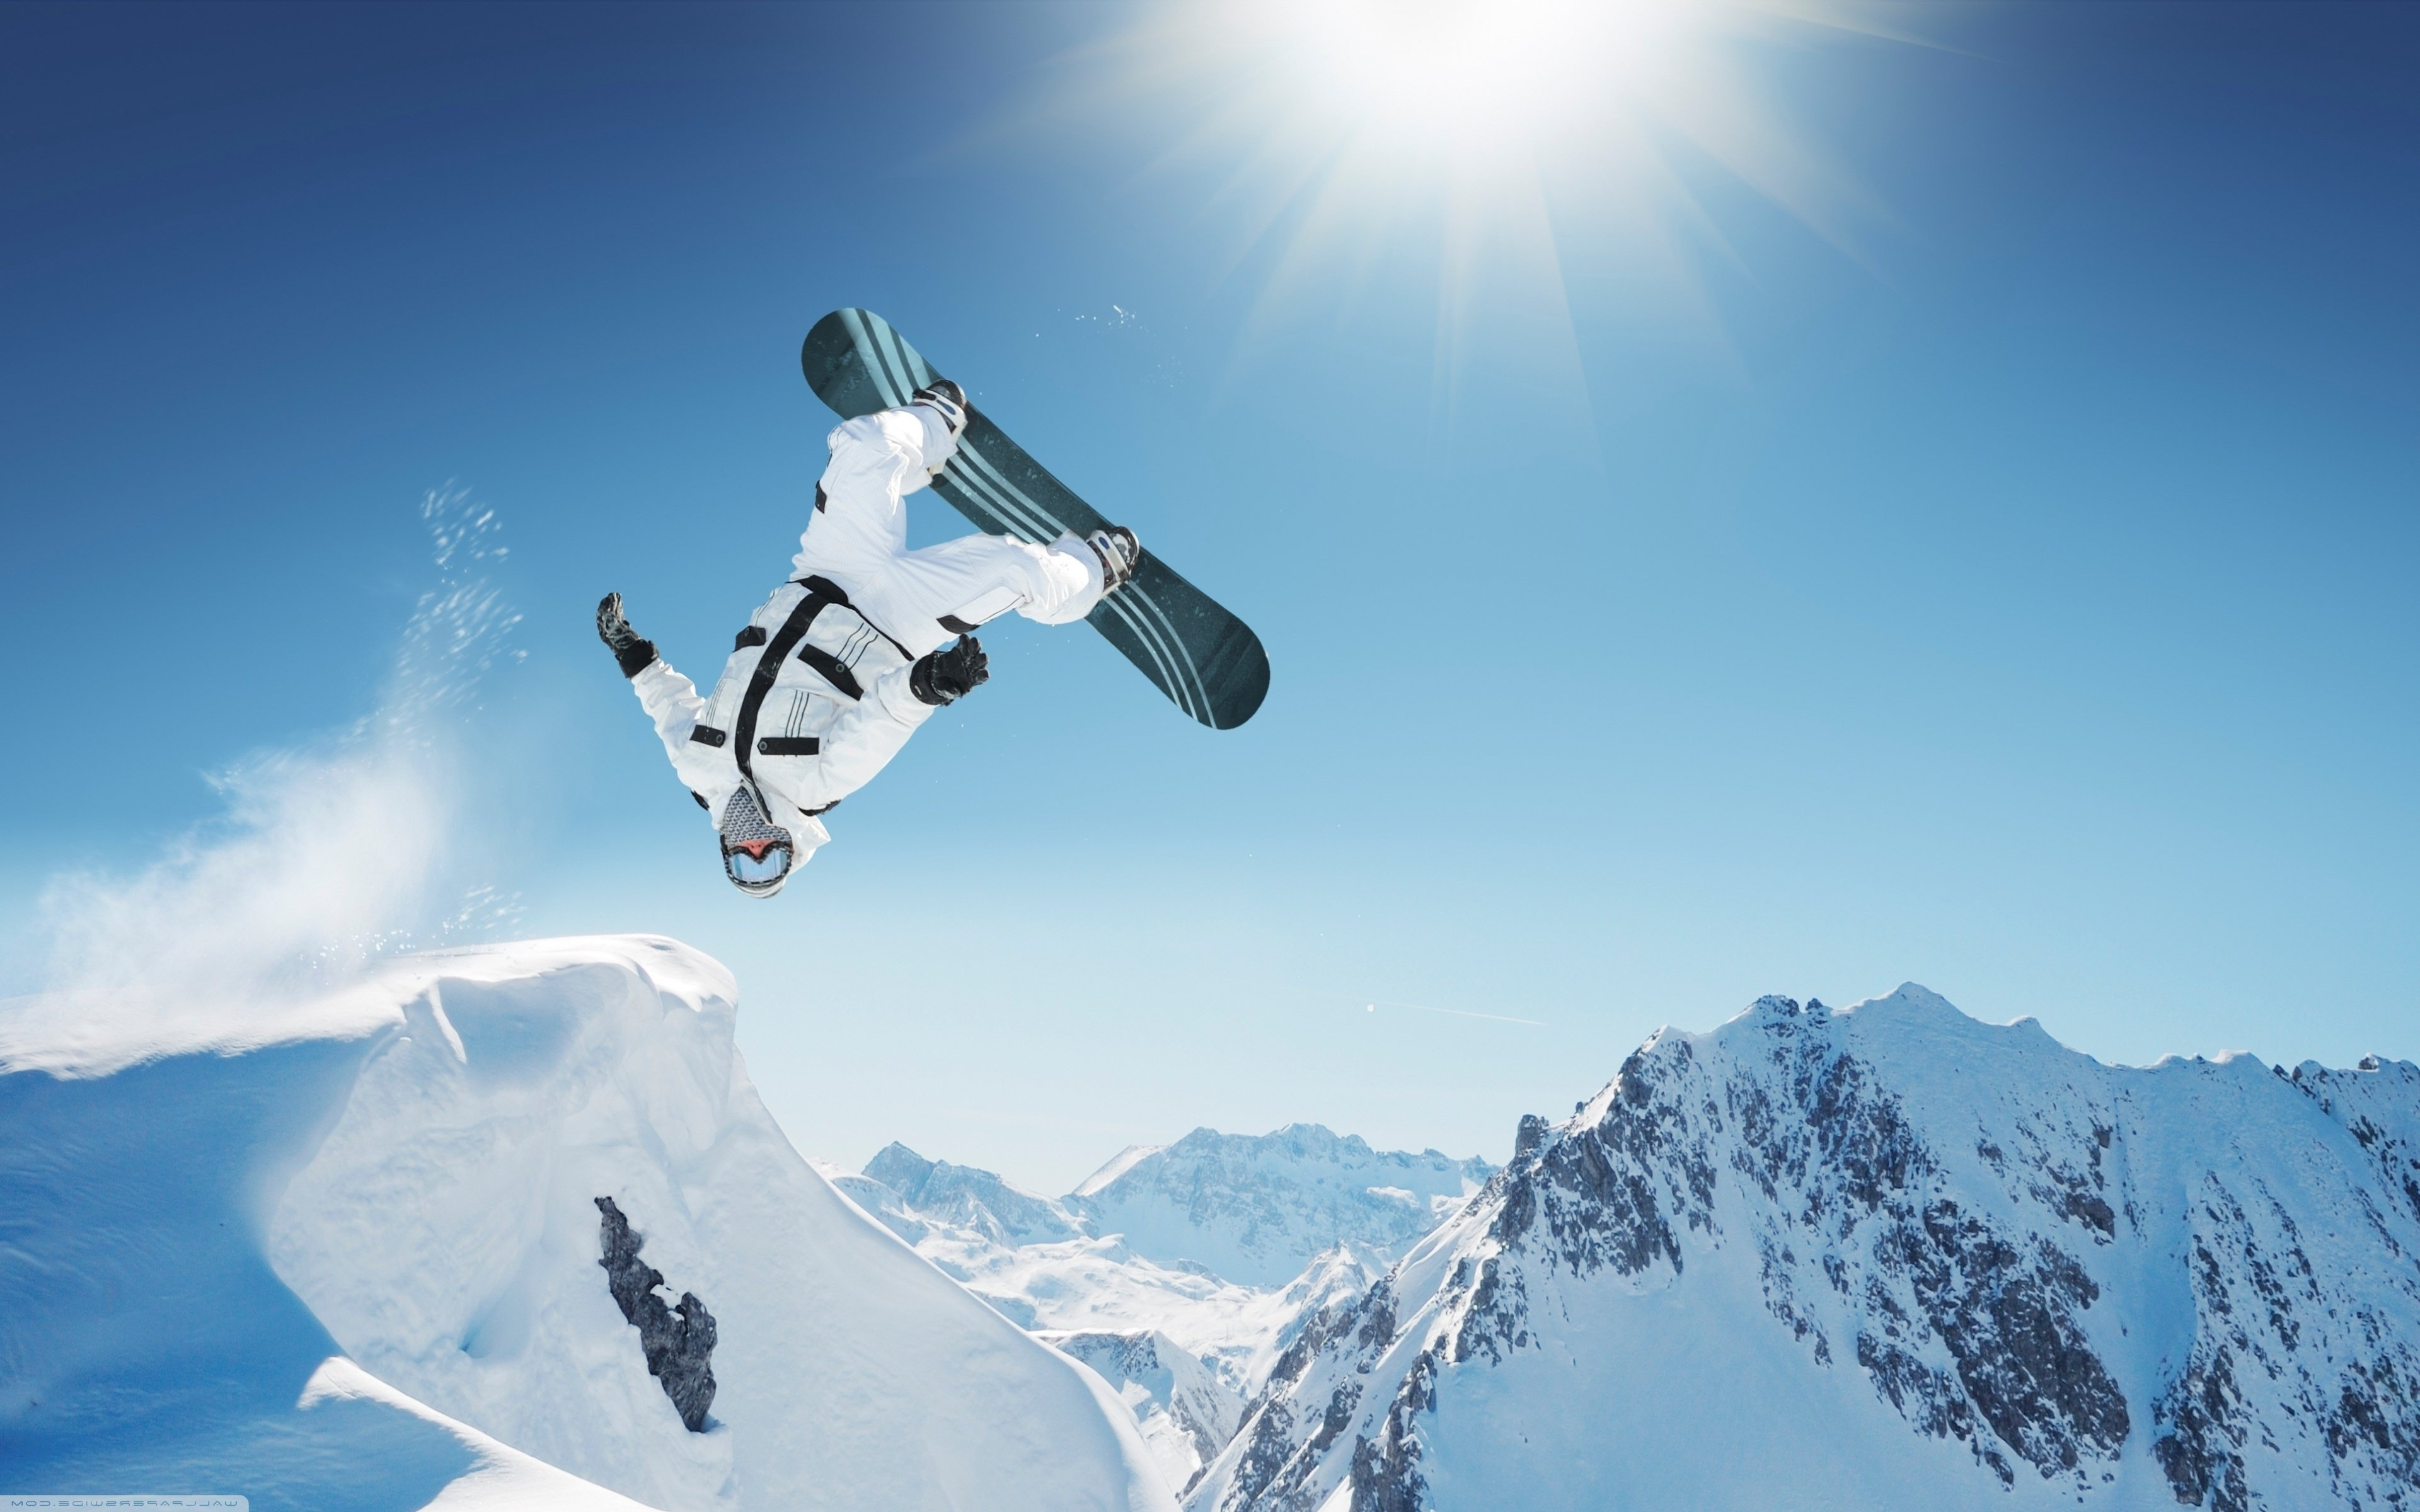 snowboard outdoor wallpaper desktop - photo #29